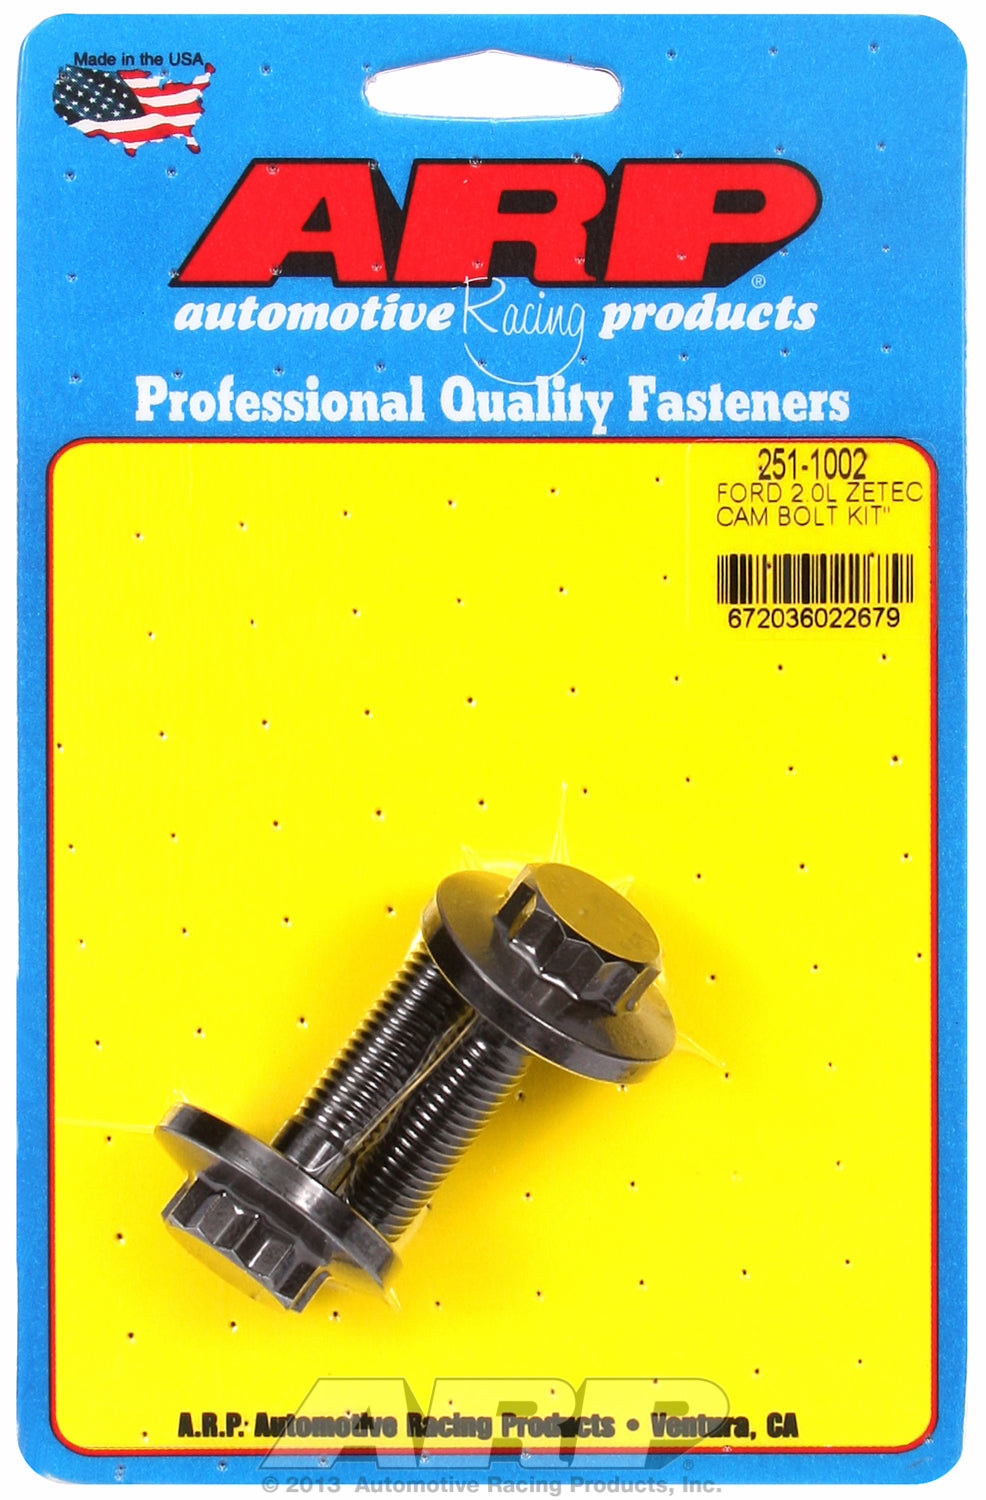 Cam Bolt Kit for Ford 2.0L Zetec